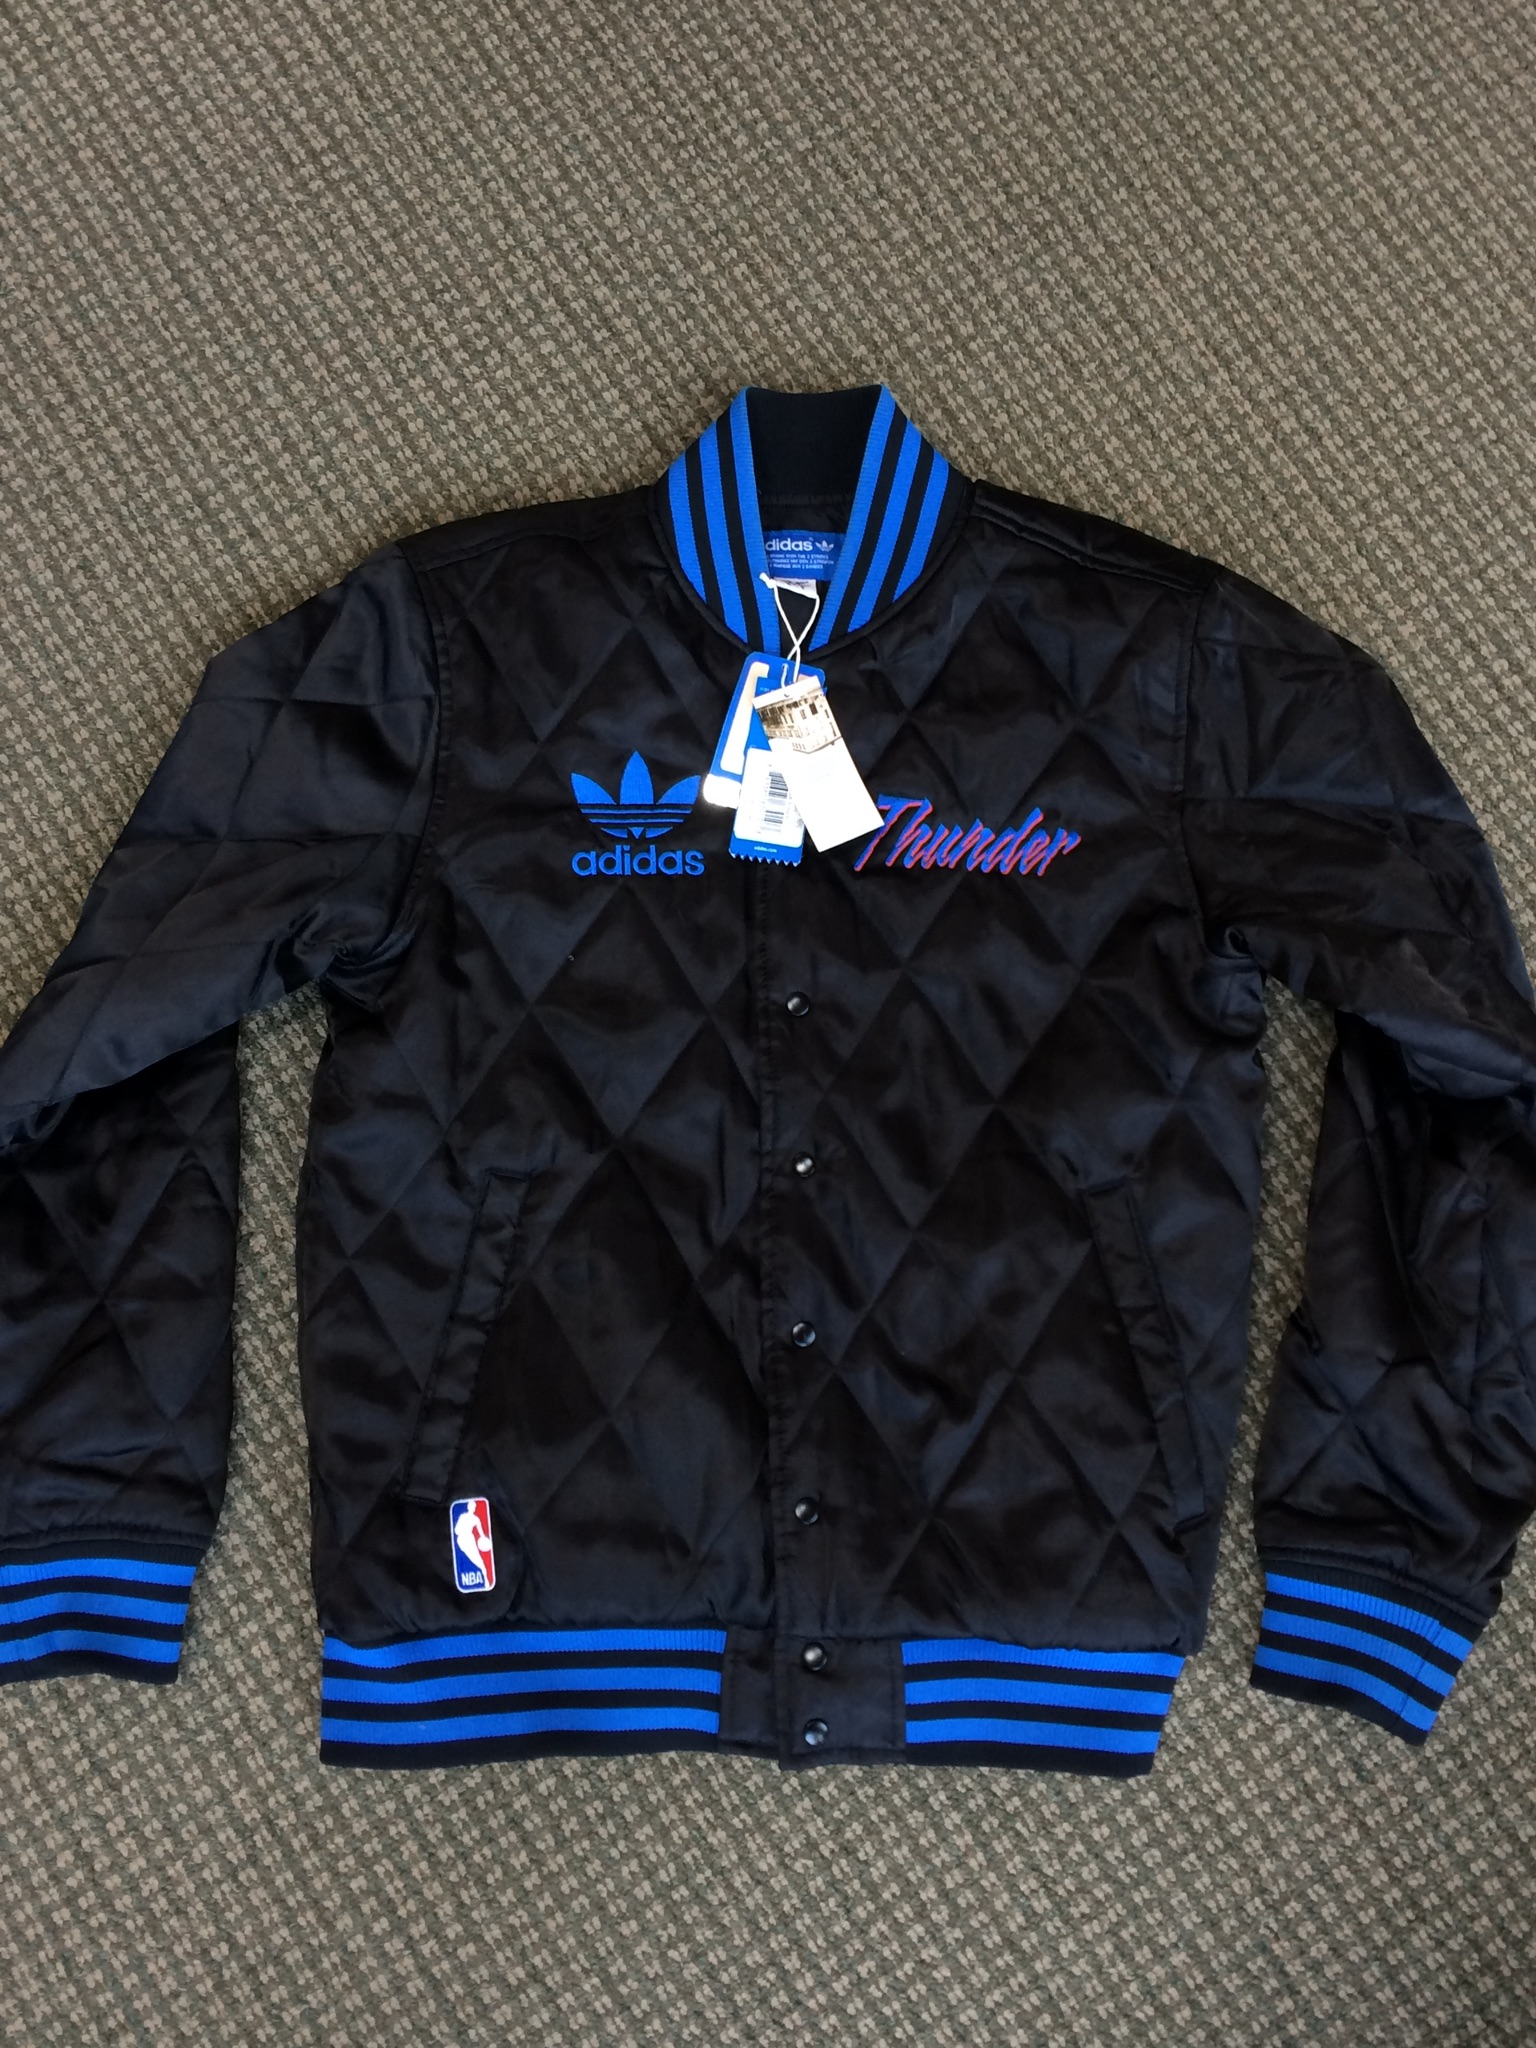 New Adidas Oklahoma Thunder Size Medium Jacket